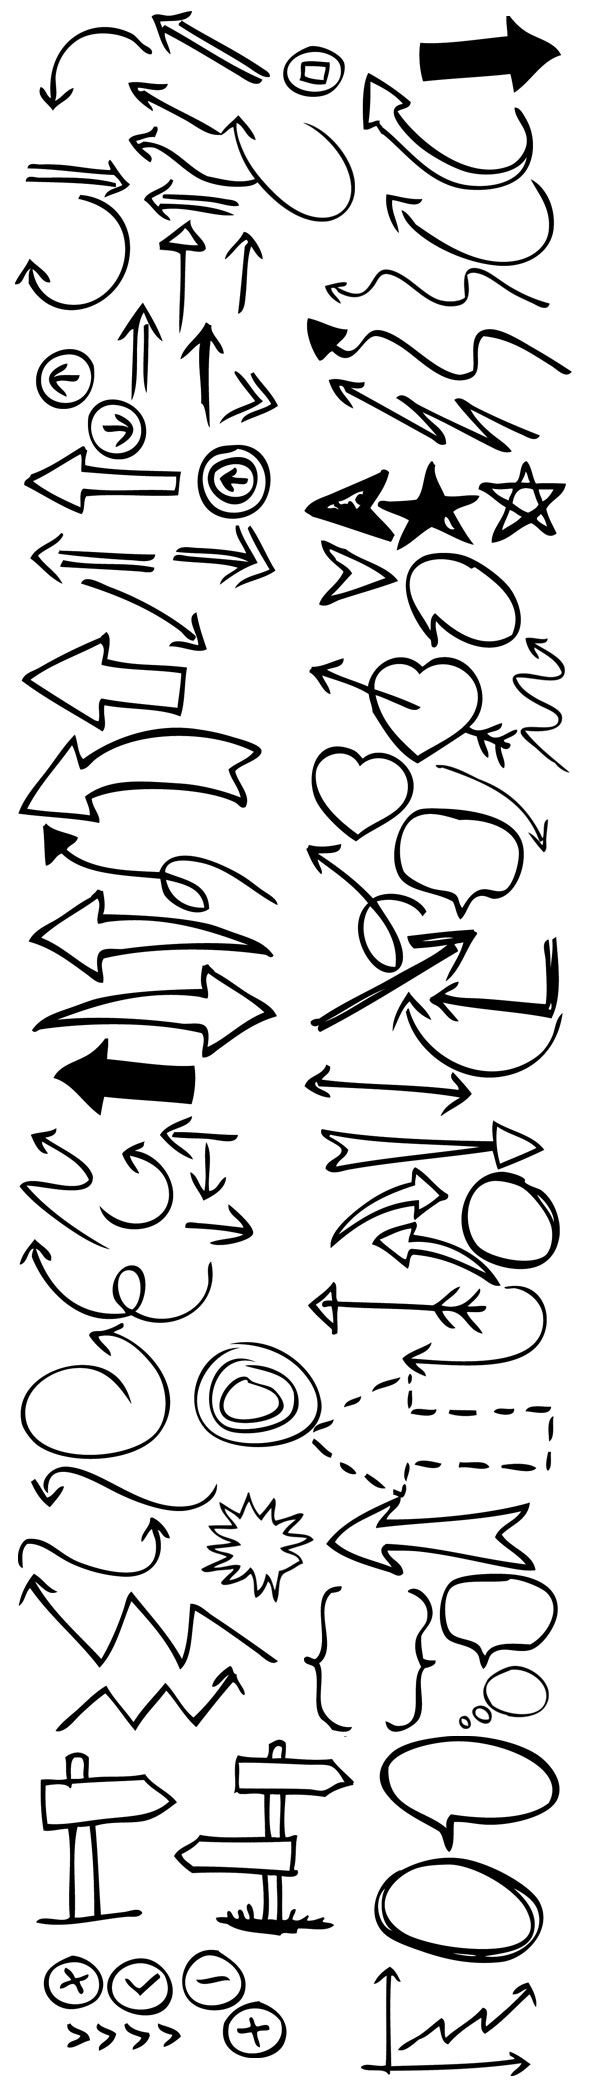 handdrawn-arrow-symbols-brushes